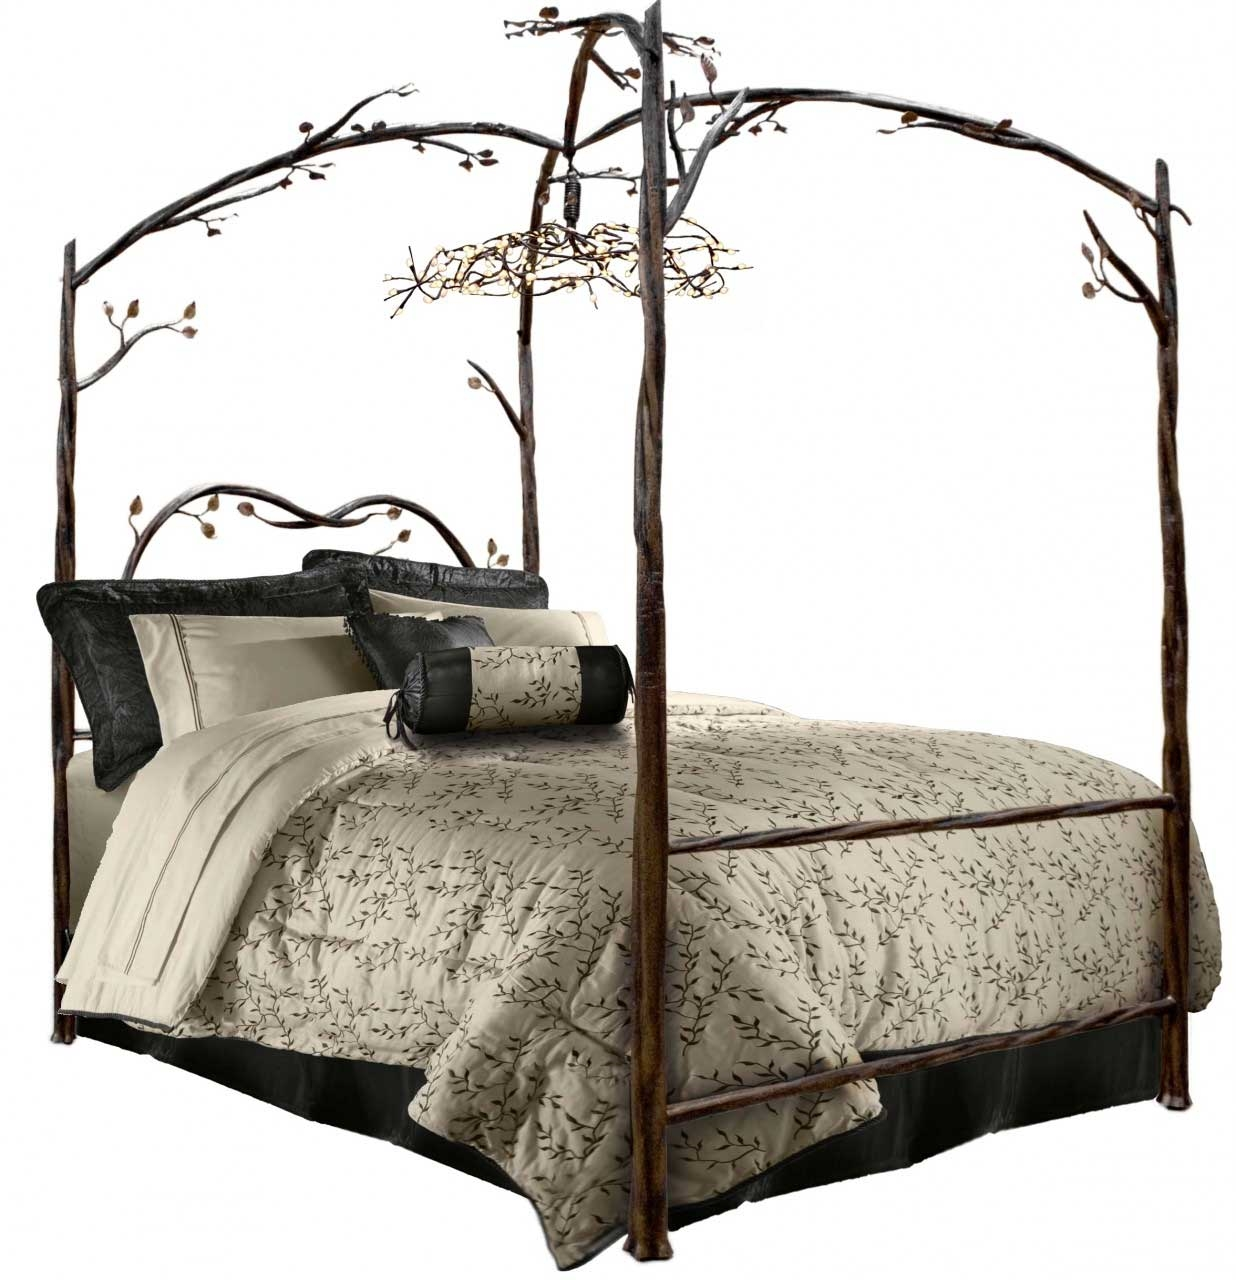 enchanted forest decorations.htm wrought iron canopy bed forest canopy bed  wrought iron canopy bed forest canopy bed